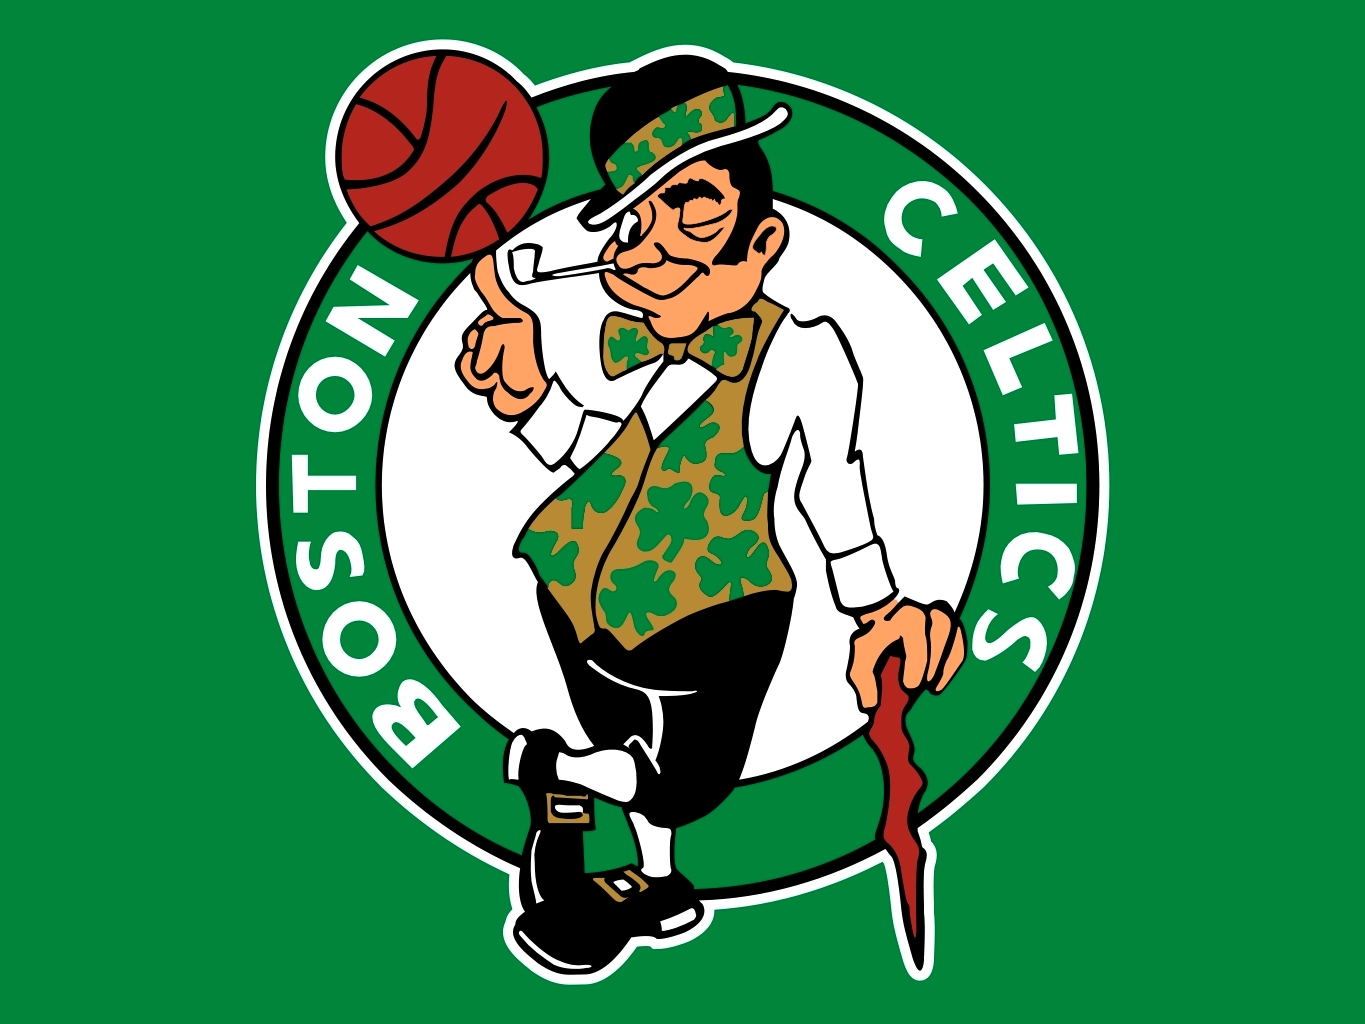 boston-celtics-logo.jpg